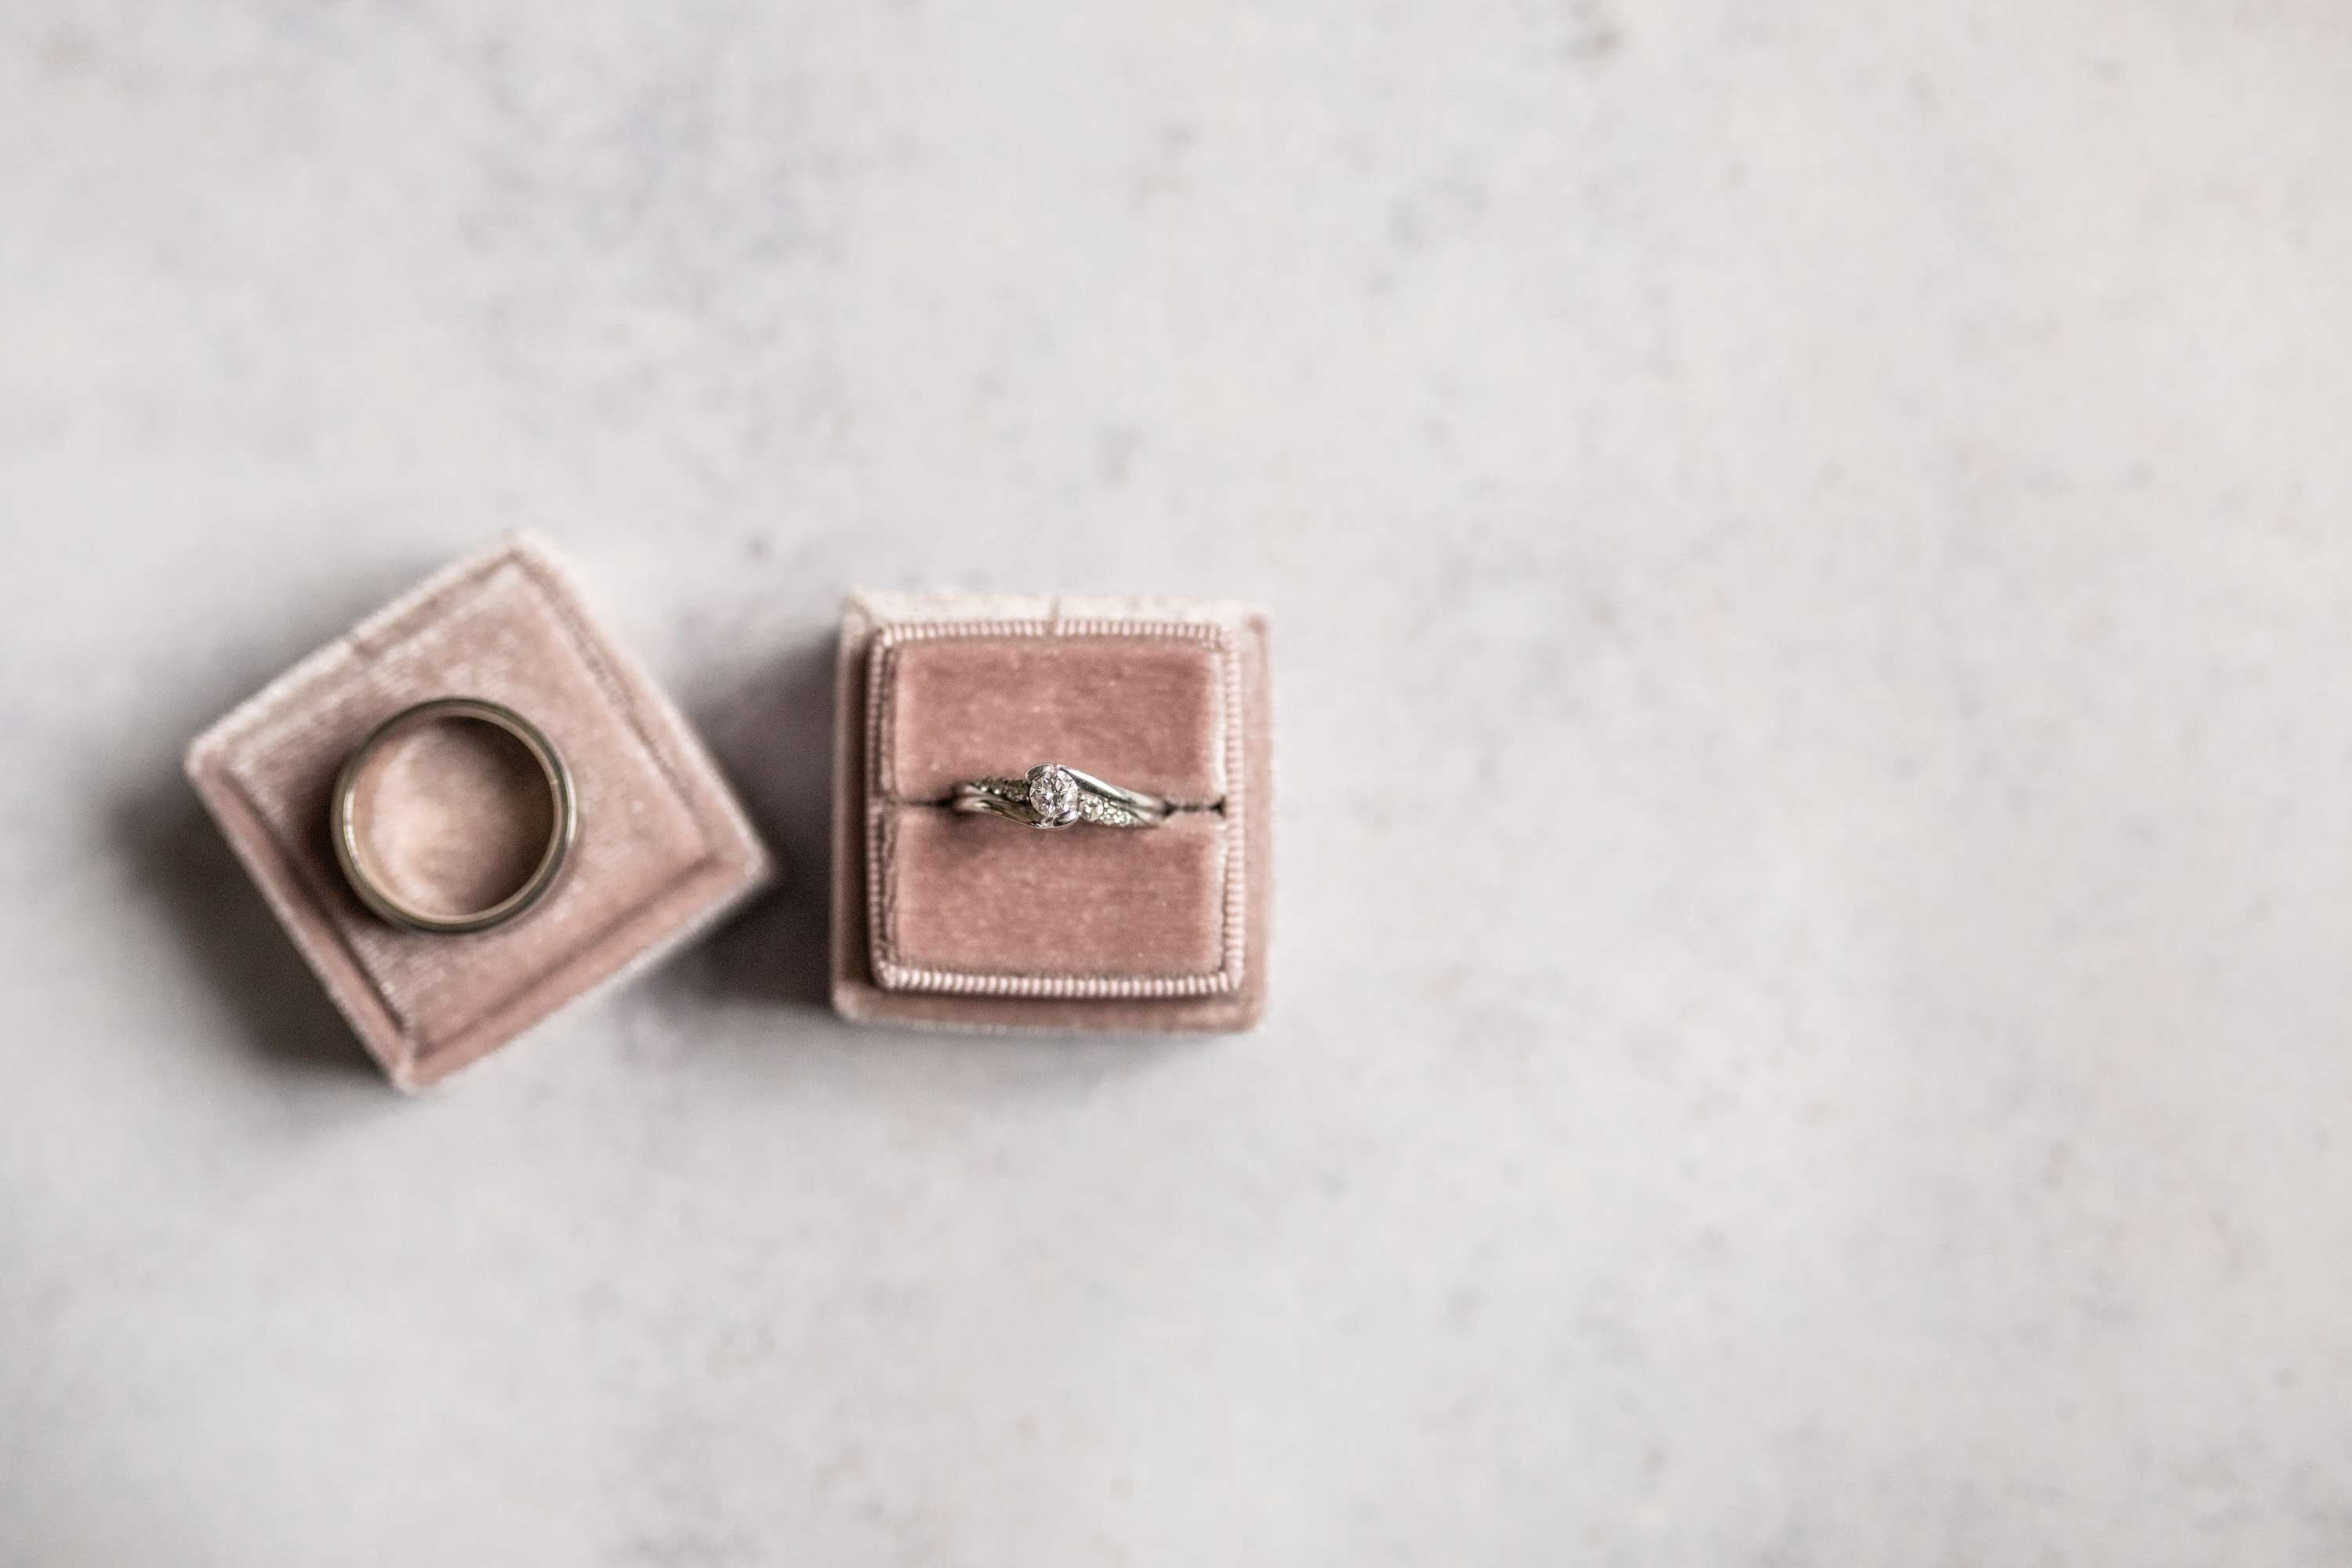 A wedding photo of bride and groom's wedding rings on a pink velvet ring box. Taken in Chichester, Sussex